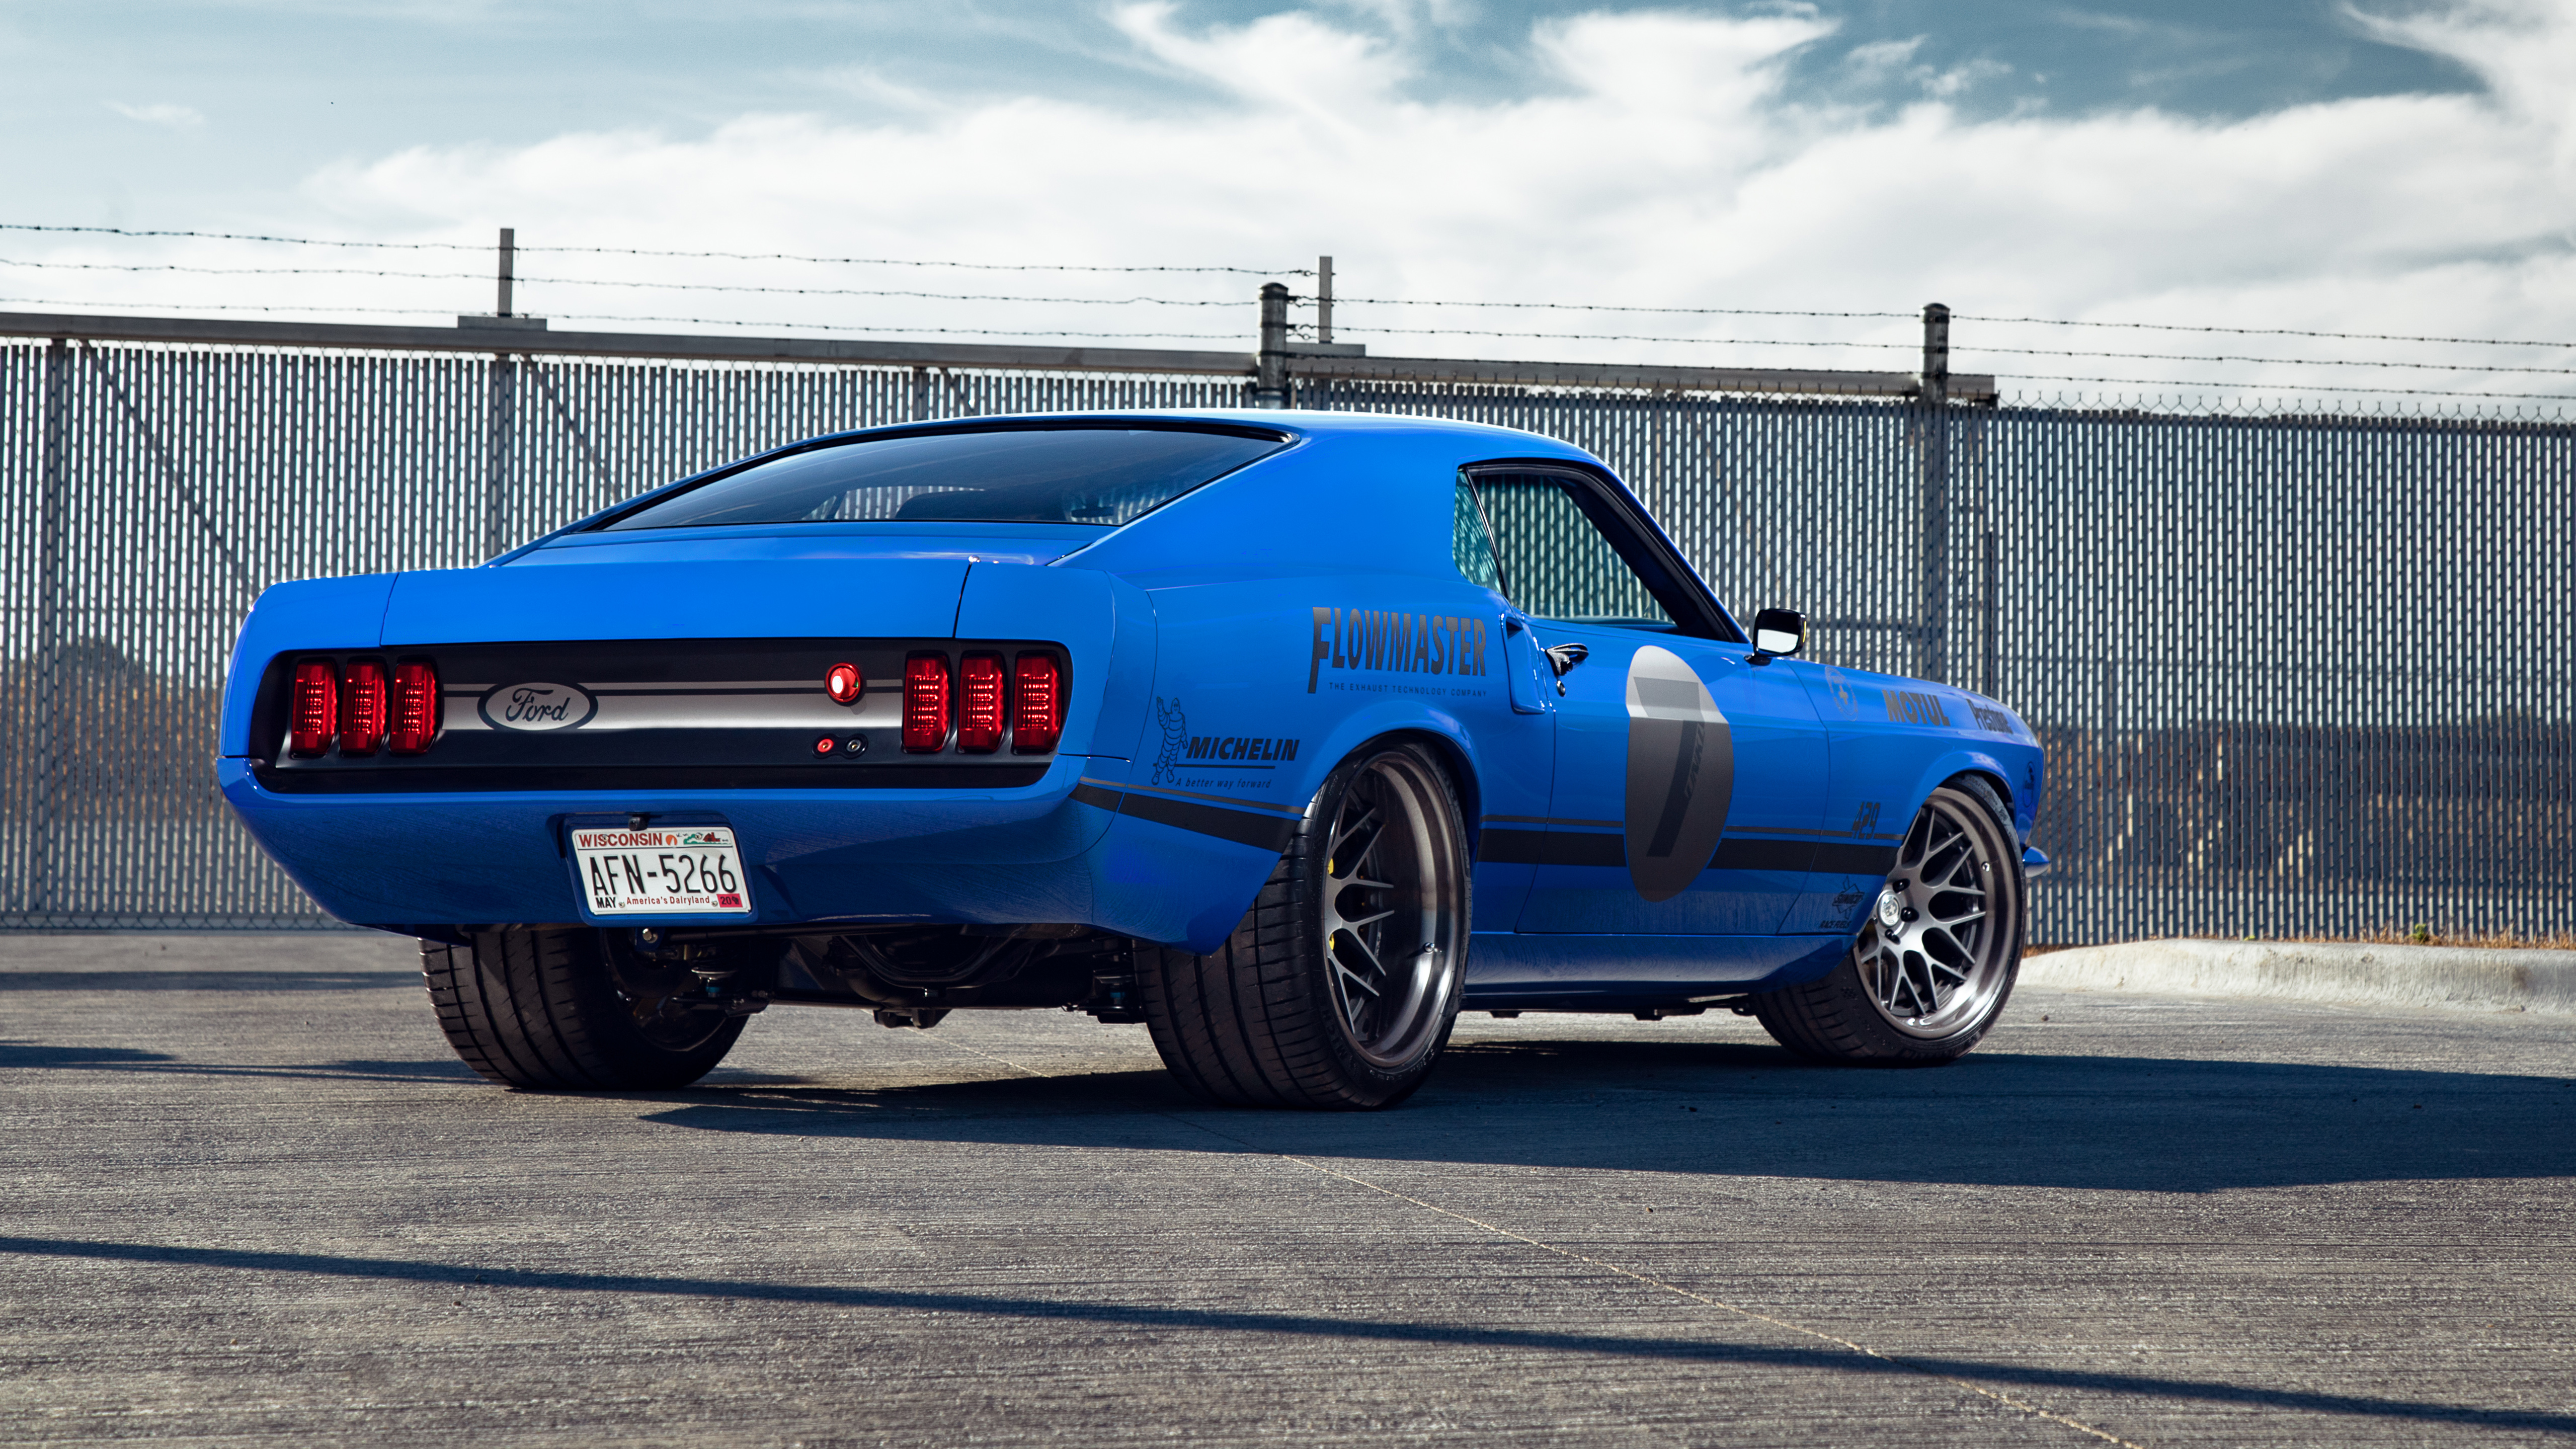 1969 Ringbrothers Ford Mustang Unkl 4K 3 Wallpaper | HD ...